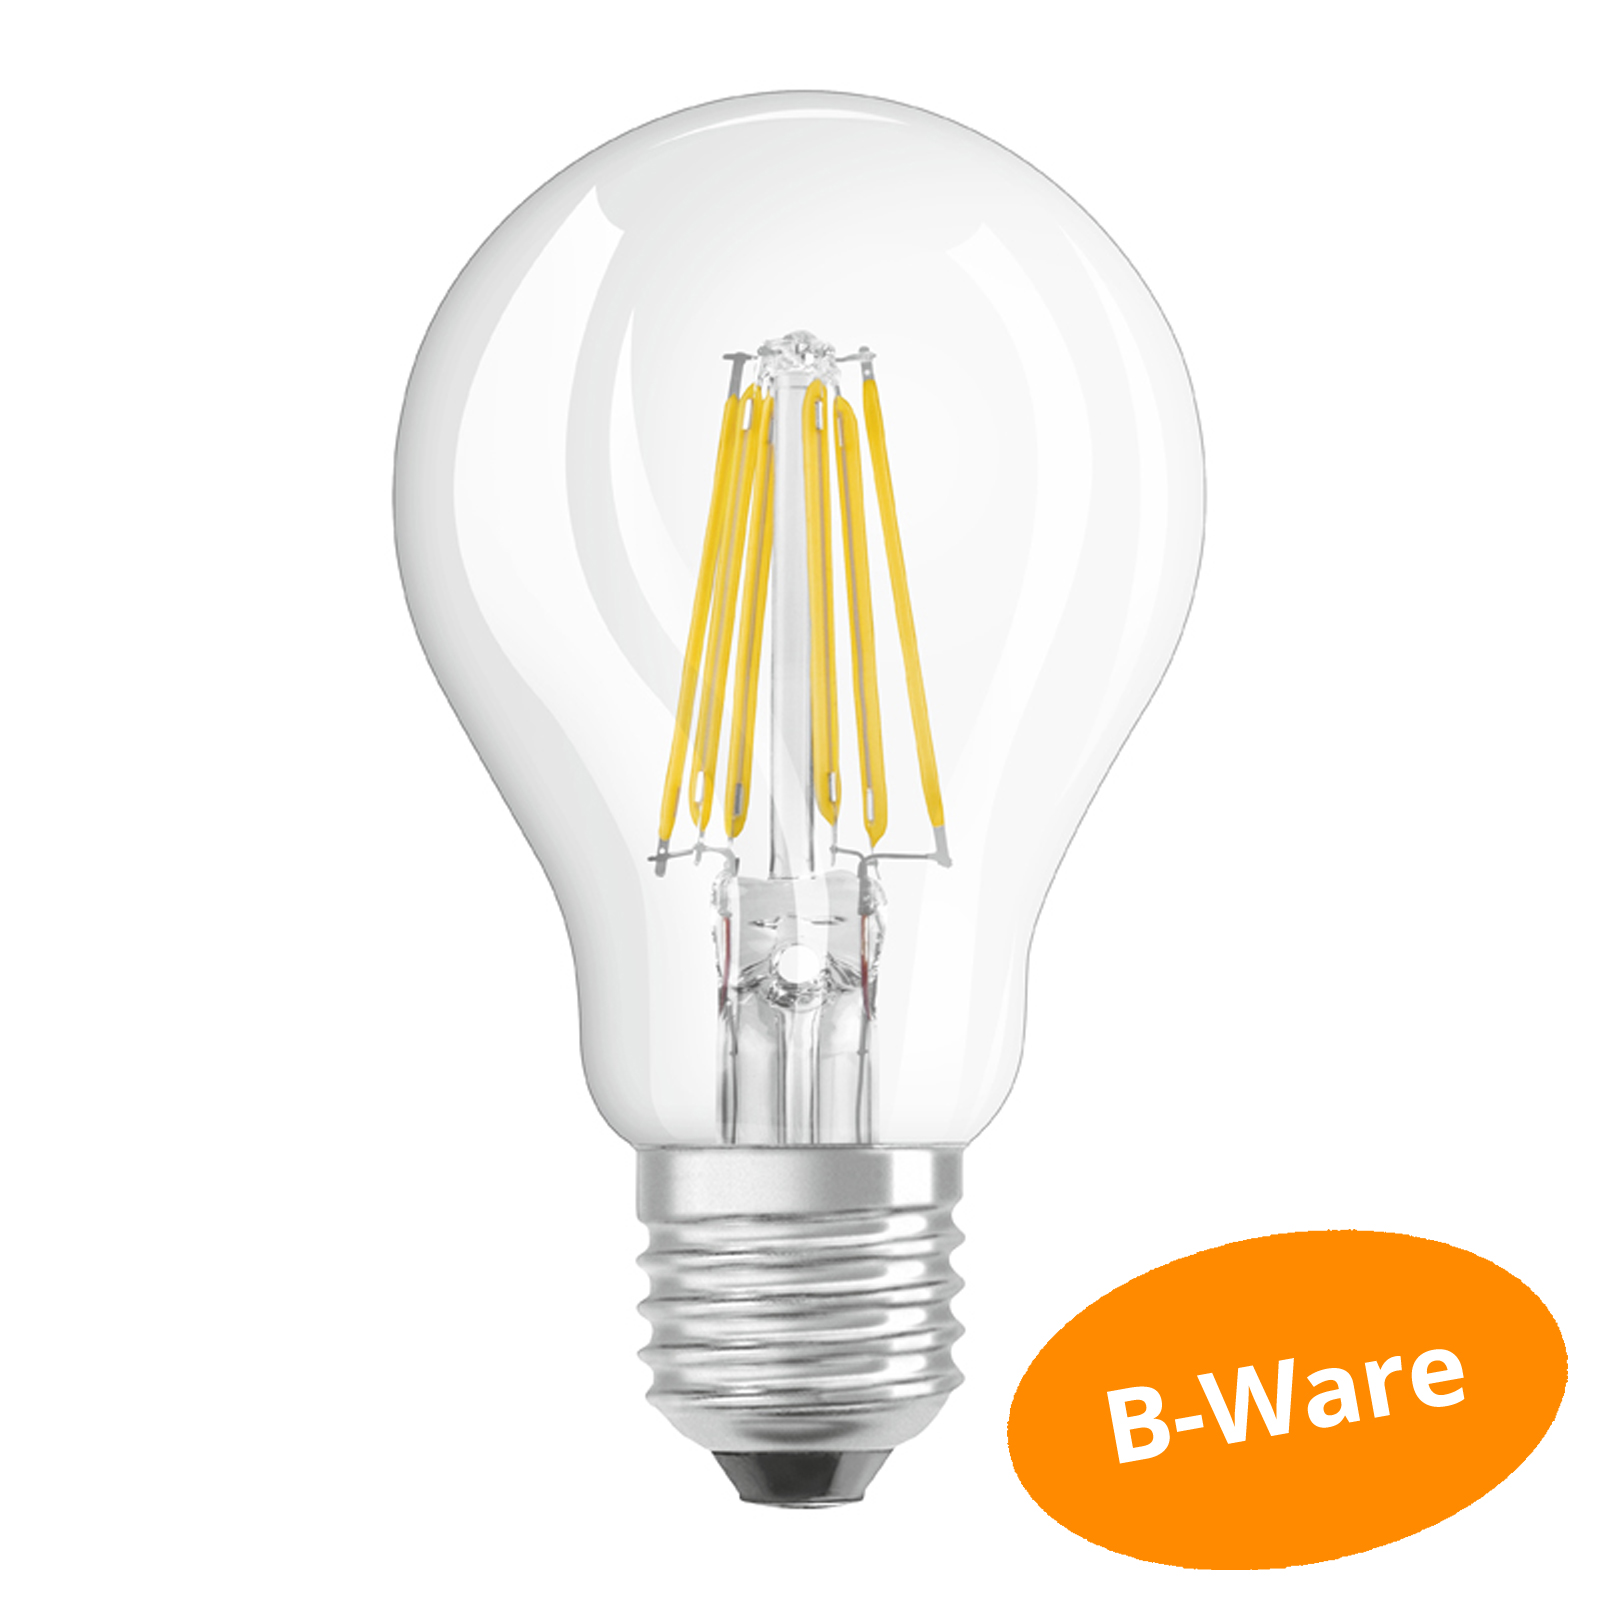 osram led retrofit classic a 75 e27 8 watt wie 75 watt 1055 lumen warm white ebay. Black Bedroom Furniture Sets. Home Design Ideas